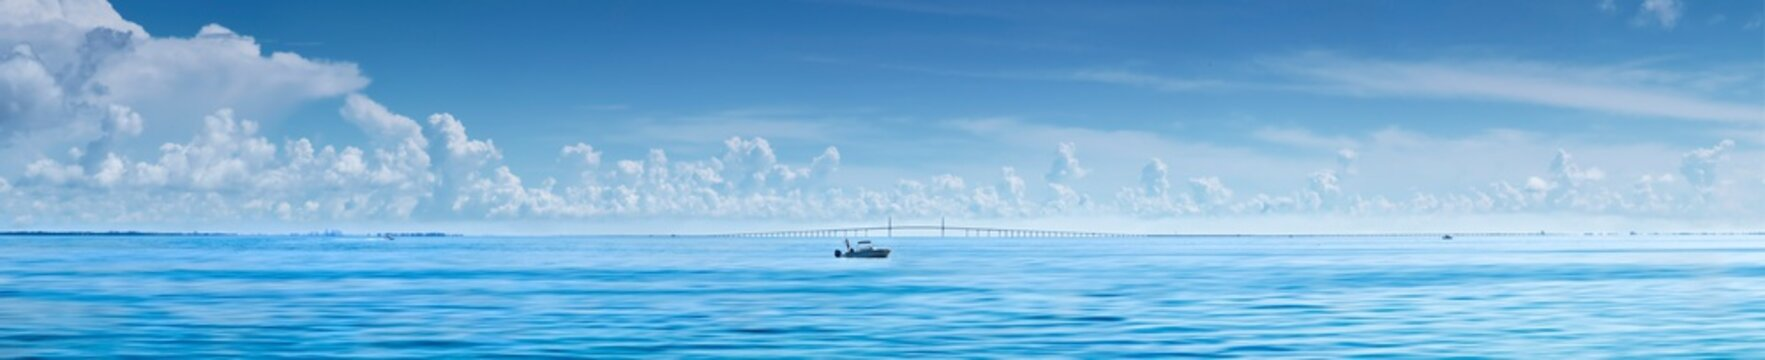 Fishing boat in front of Sunshine Skyway